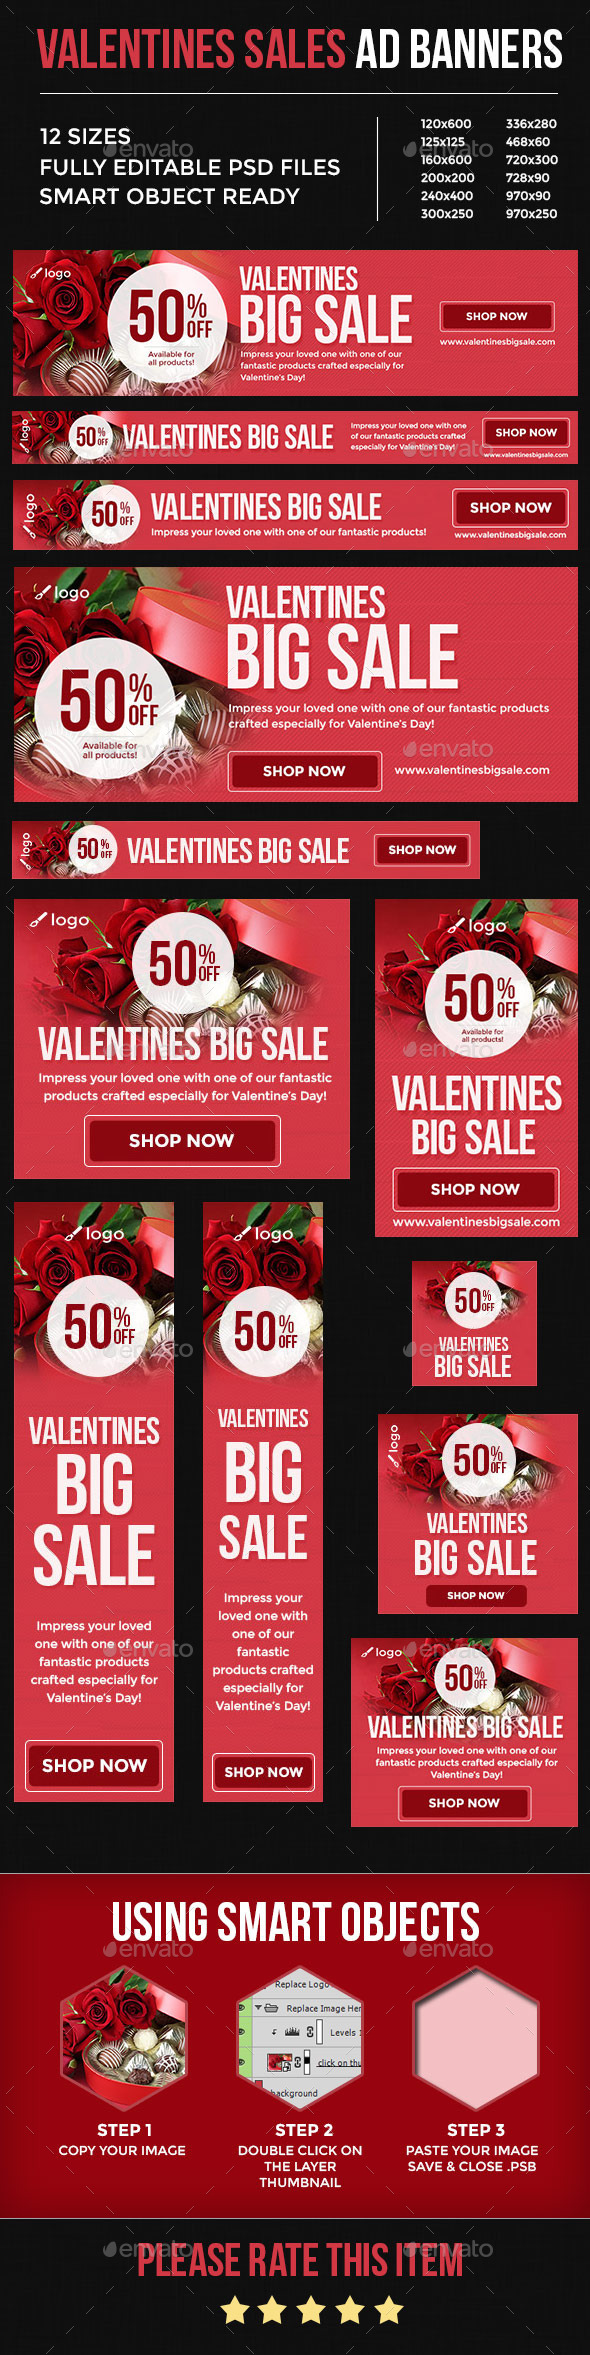 Valentines Sales Ad Banners - Banners & Ads Web Elements